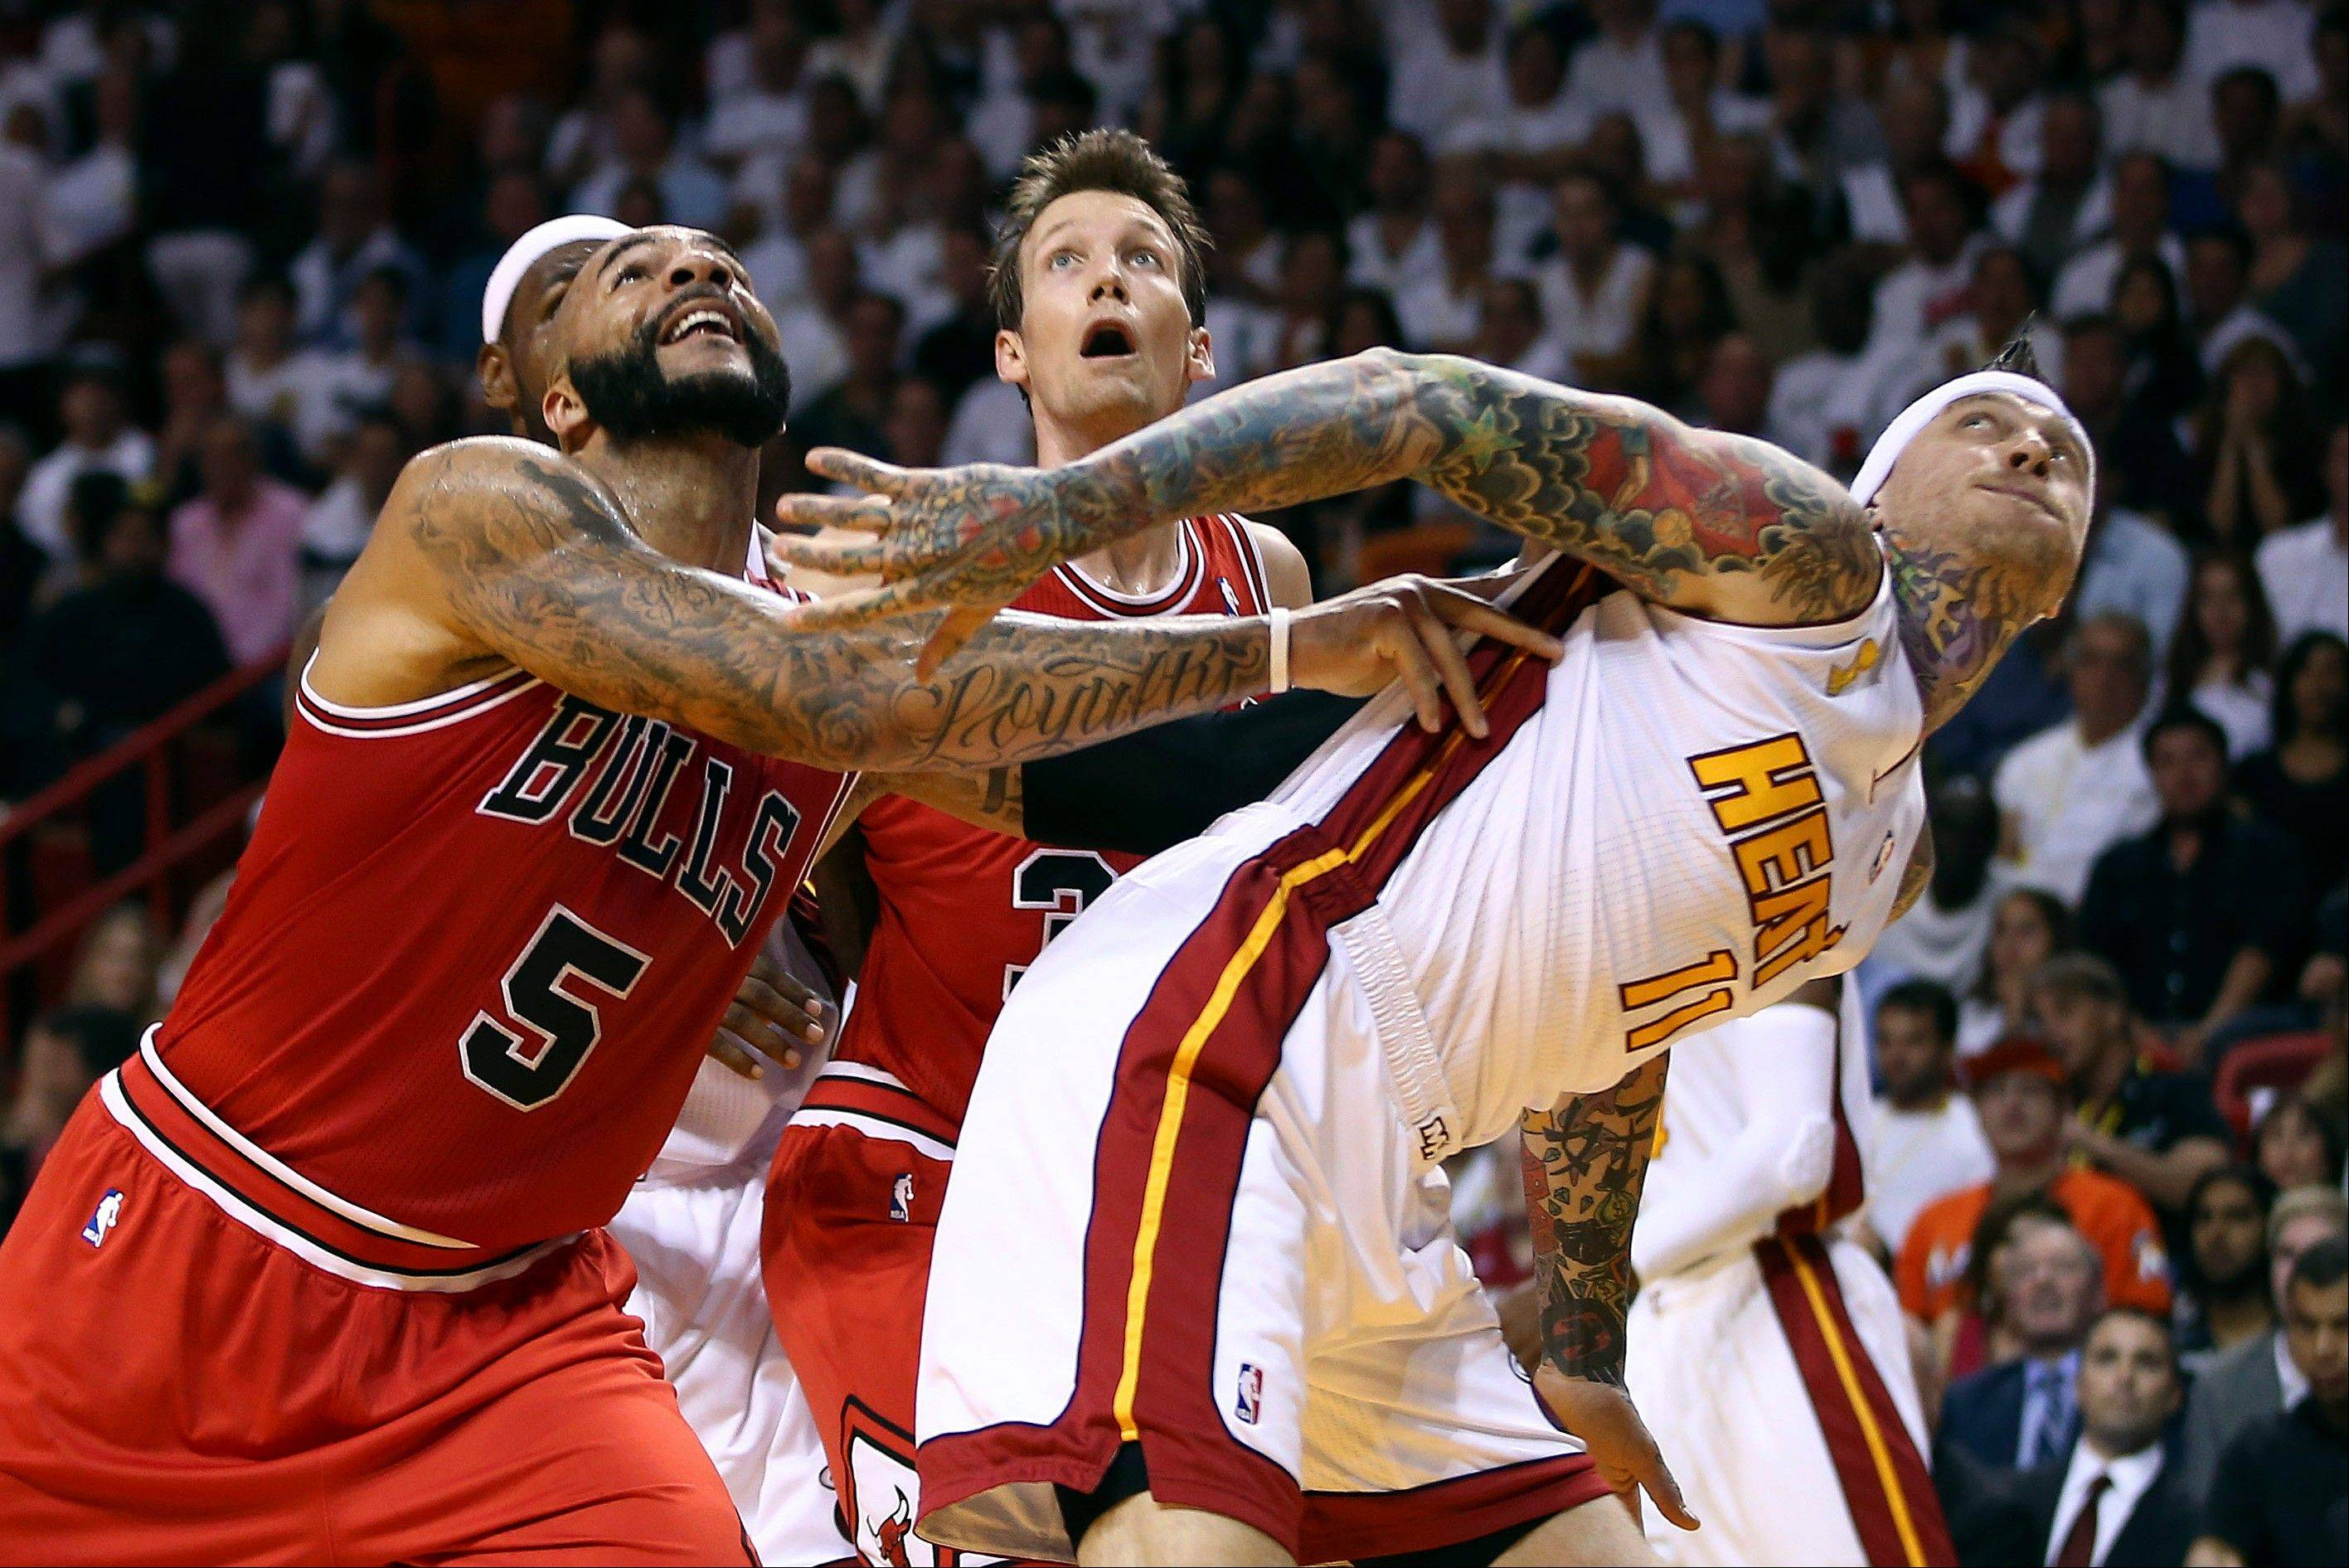 Chicago Bull Carlos Boozer (5) and Mike Dunleavy battle for a rebound with the Miami Heat's Chris Anderson (11) during the first half last night. The Heat got the better of the Bulls in the end.